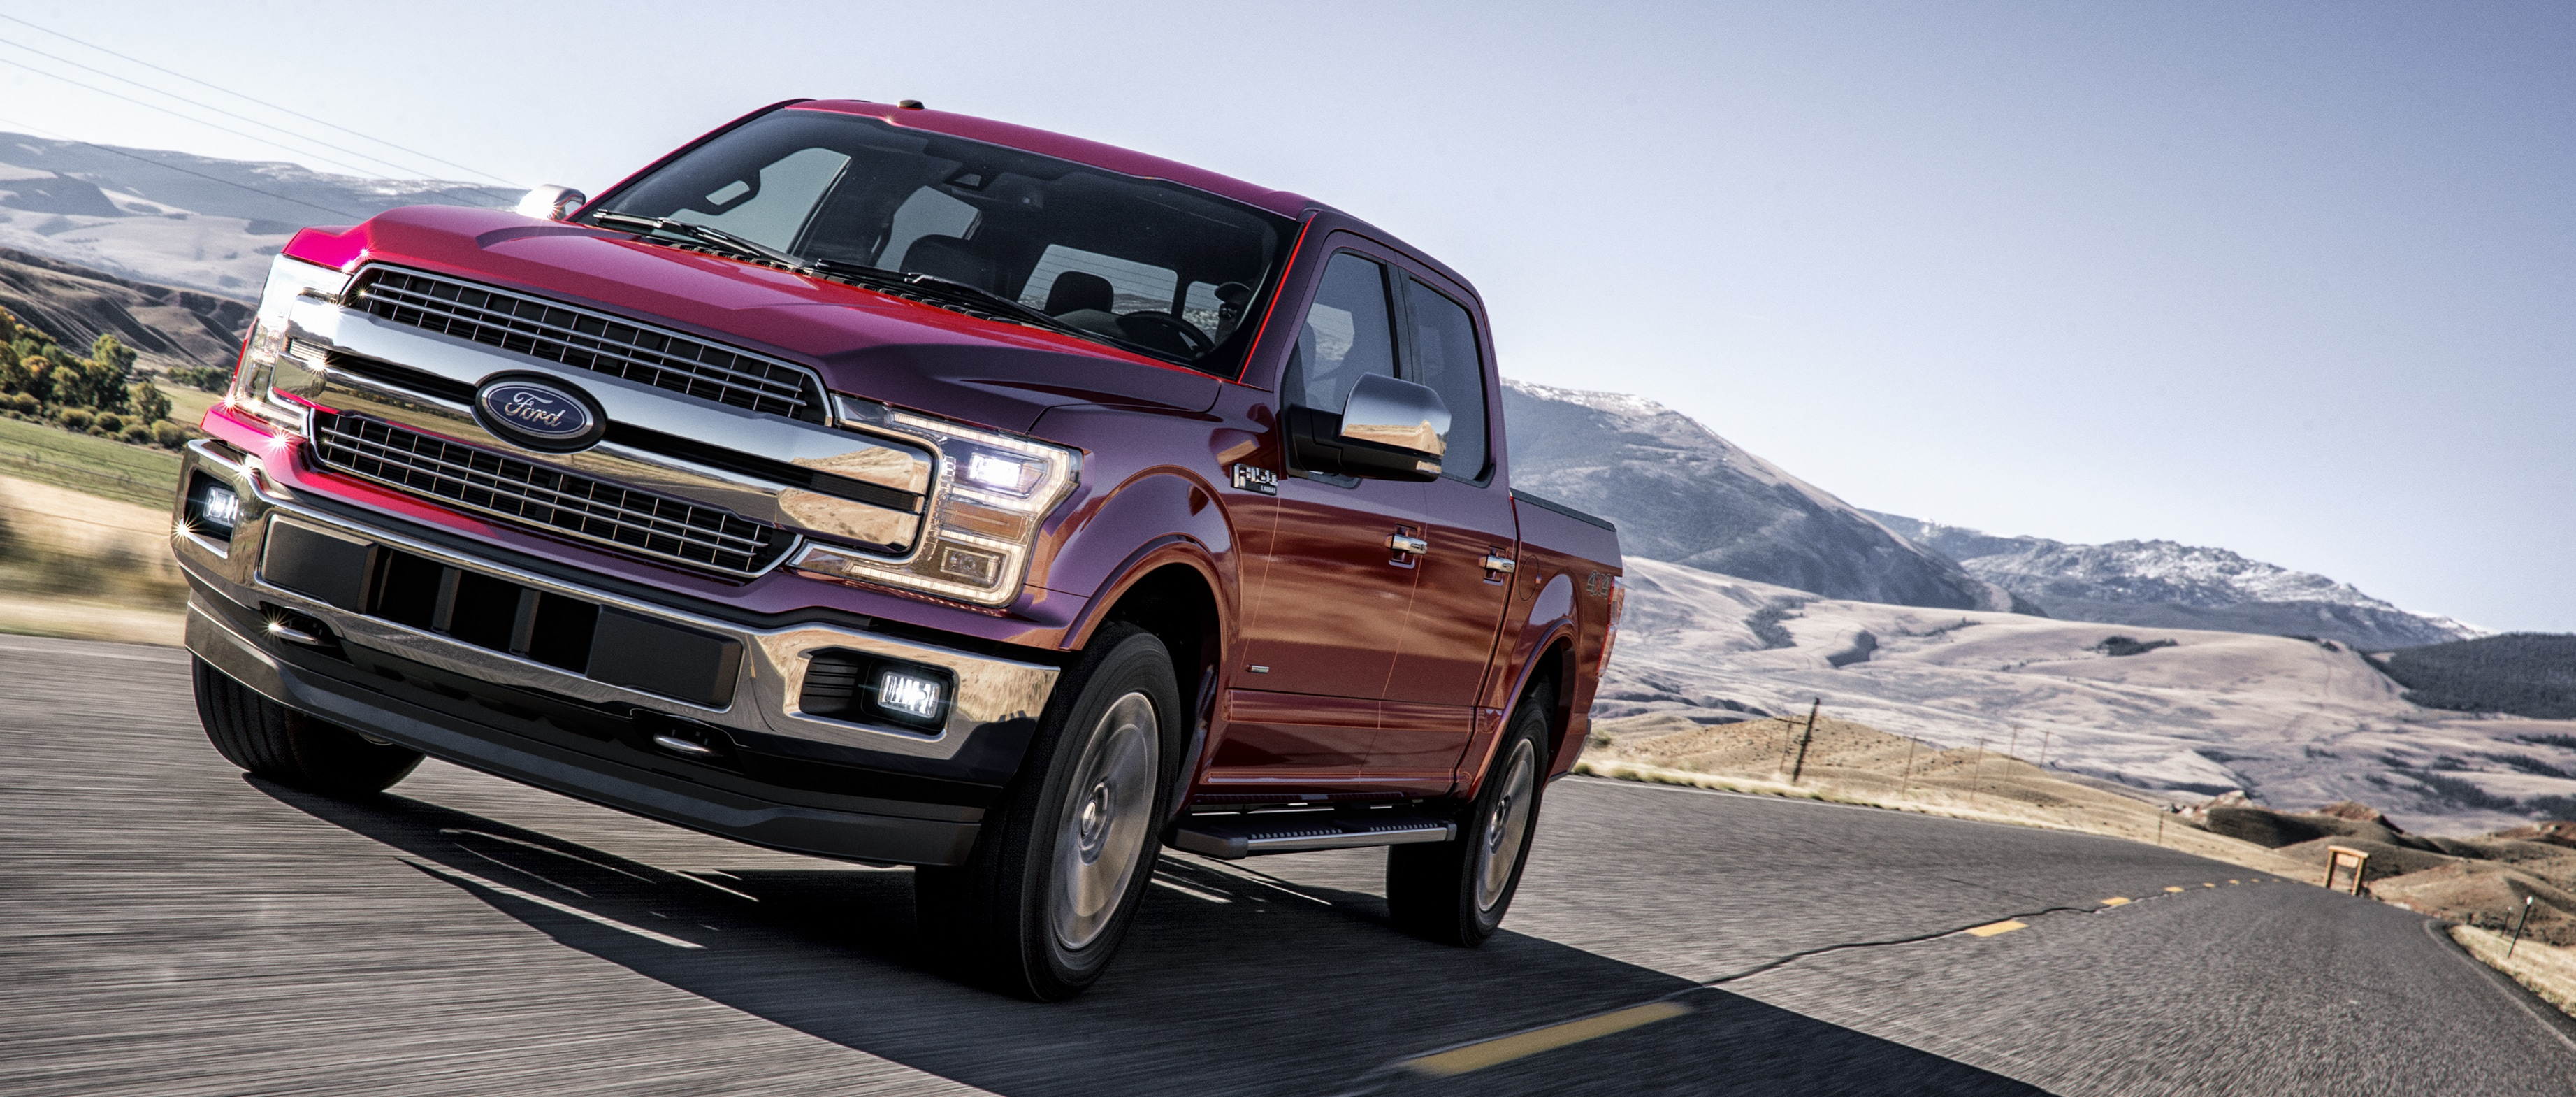 2018 ford f 150 inventory